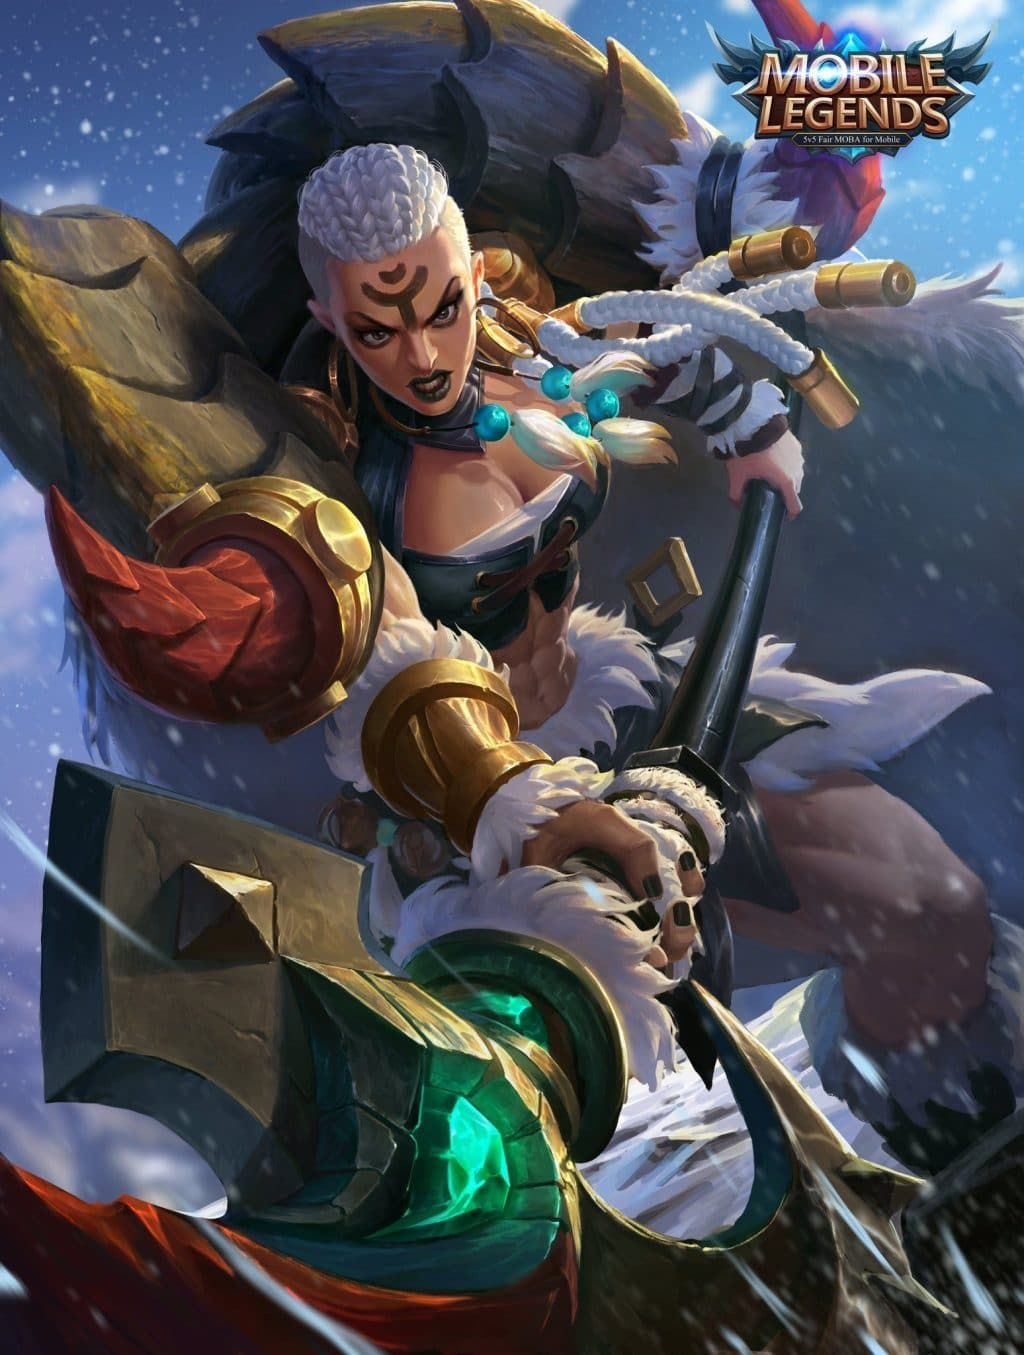 Wallpaper Mobile Legends Hilda Animasi Gambar Ilustrasi Karakter